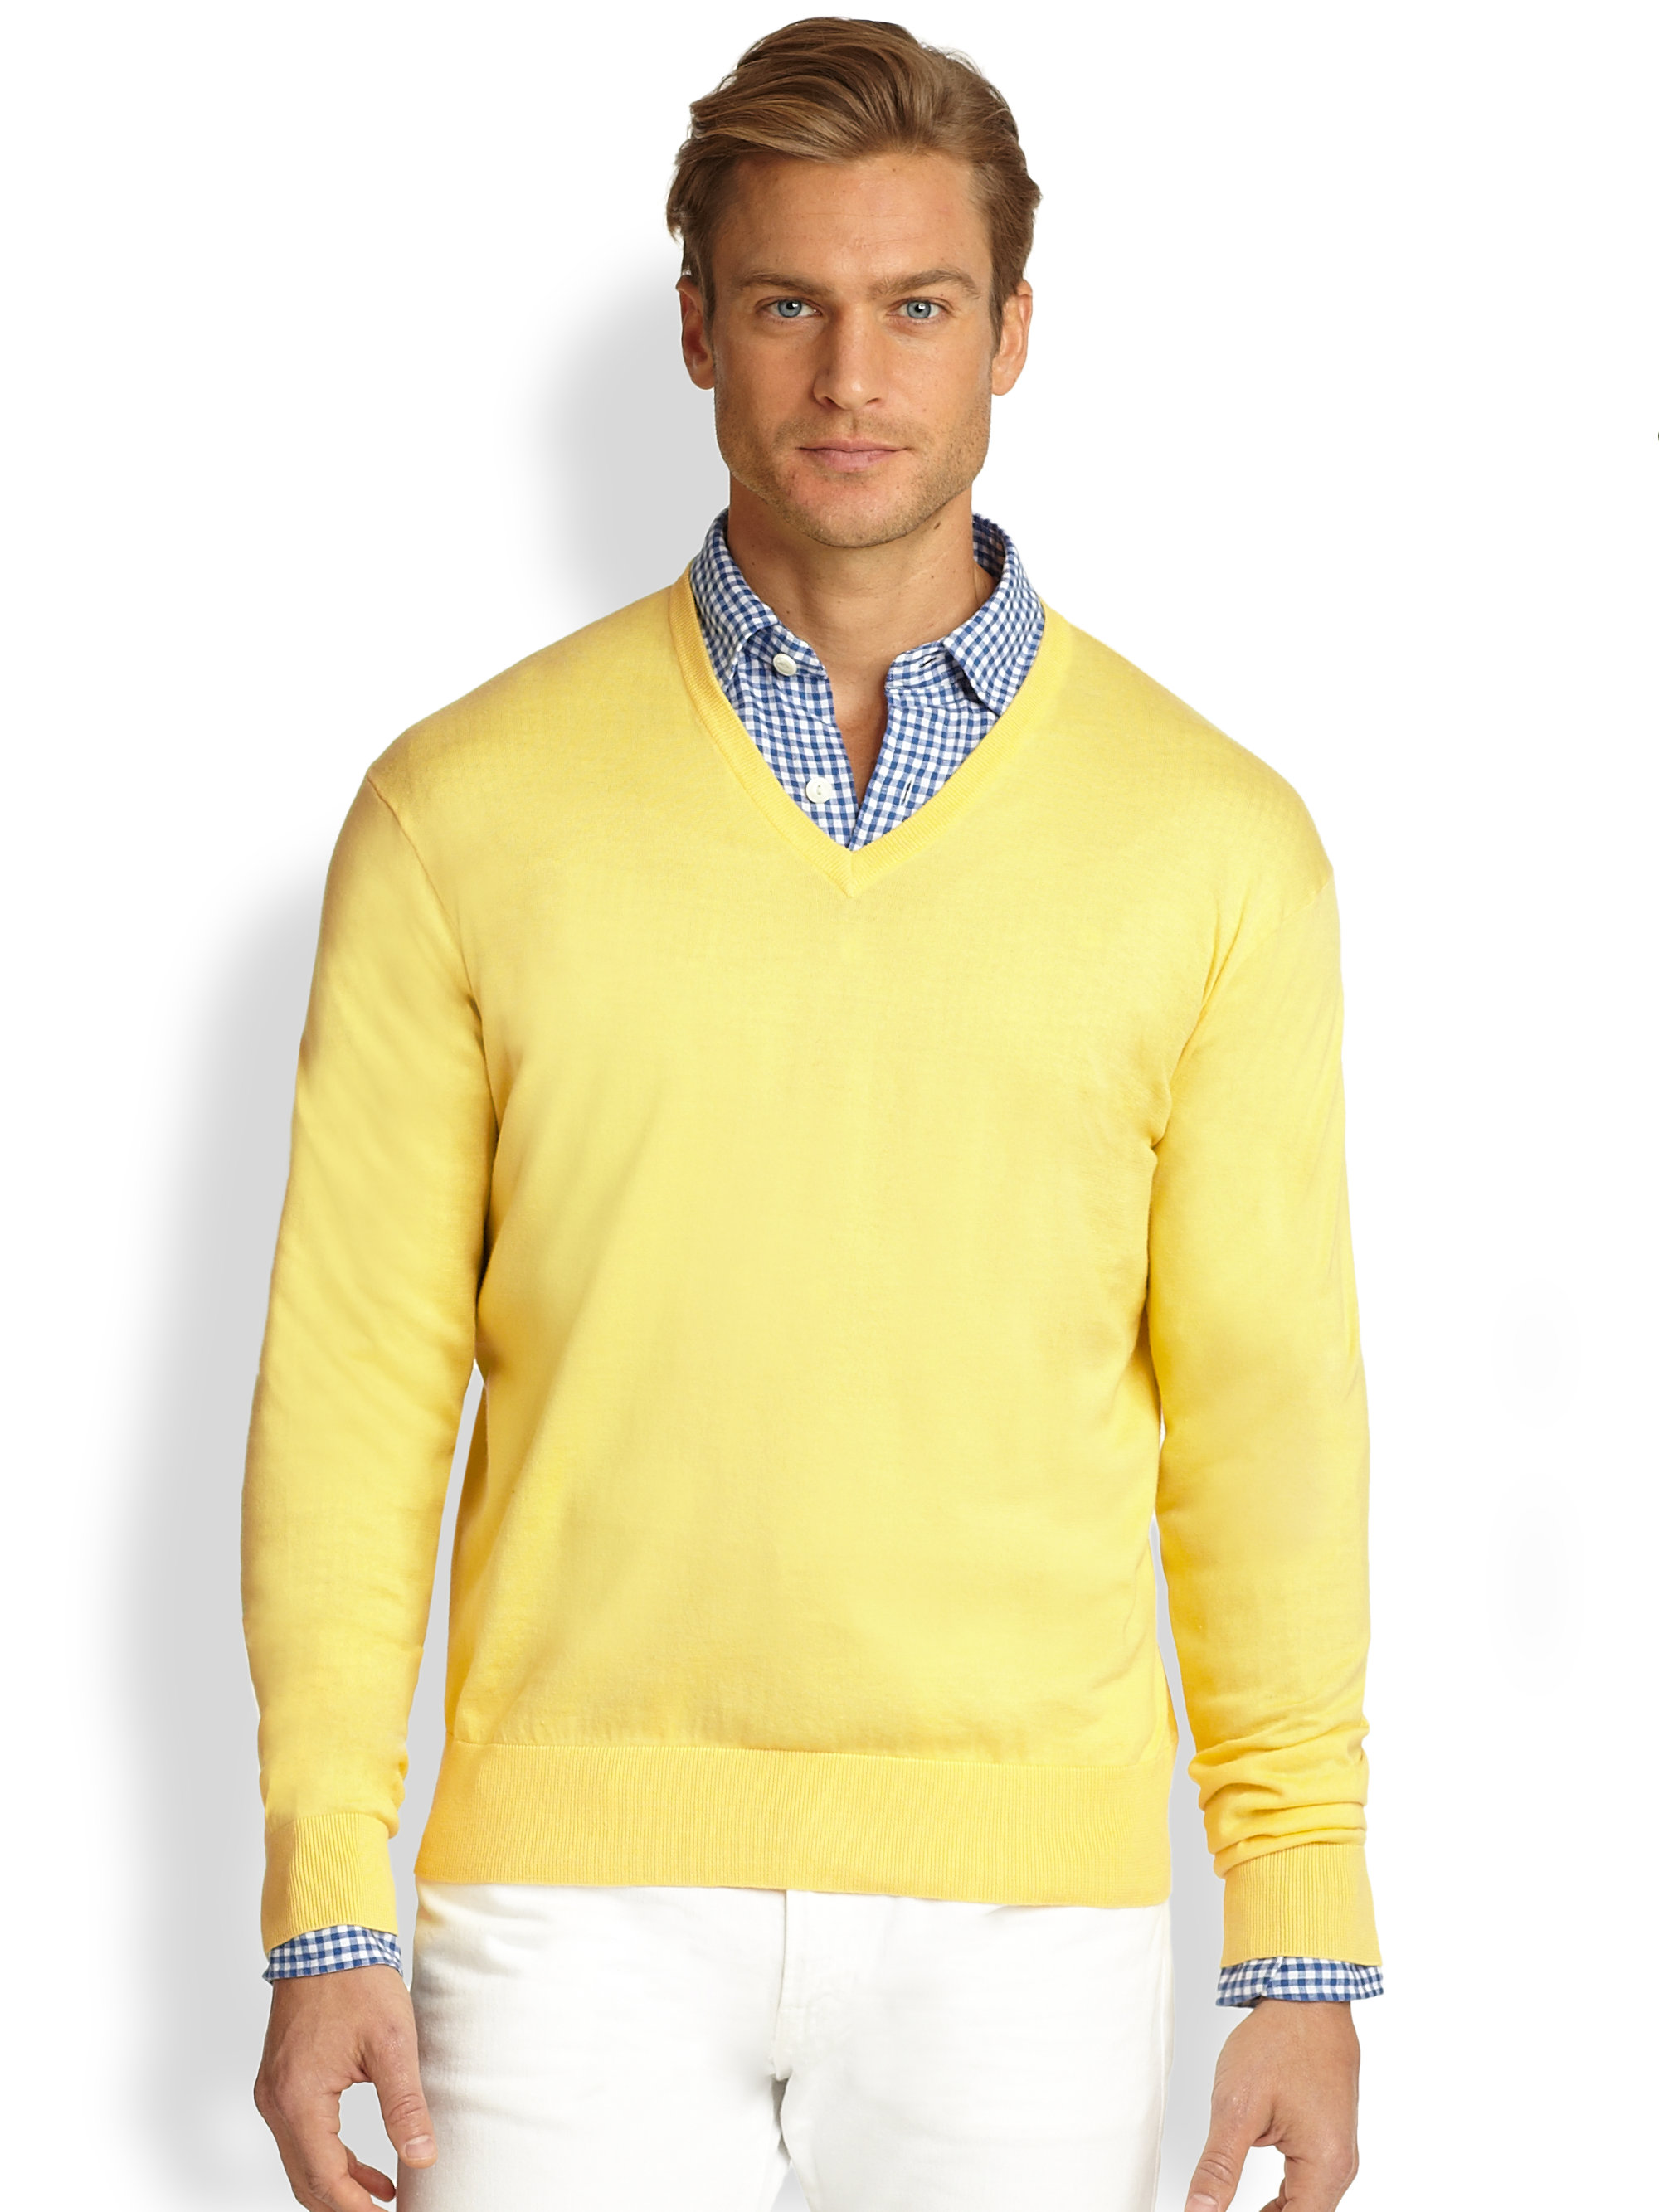 polo ralph lauren cotton v neck sweater in yellow for men lyst. Black Bedroom Furniture Sets. Home Design Ideas